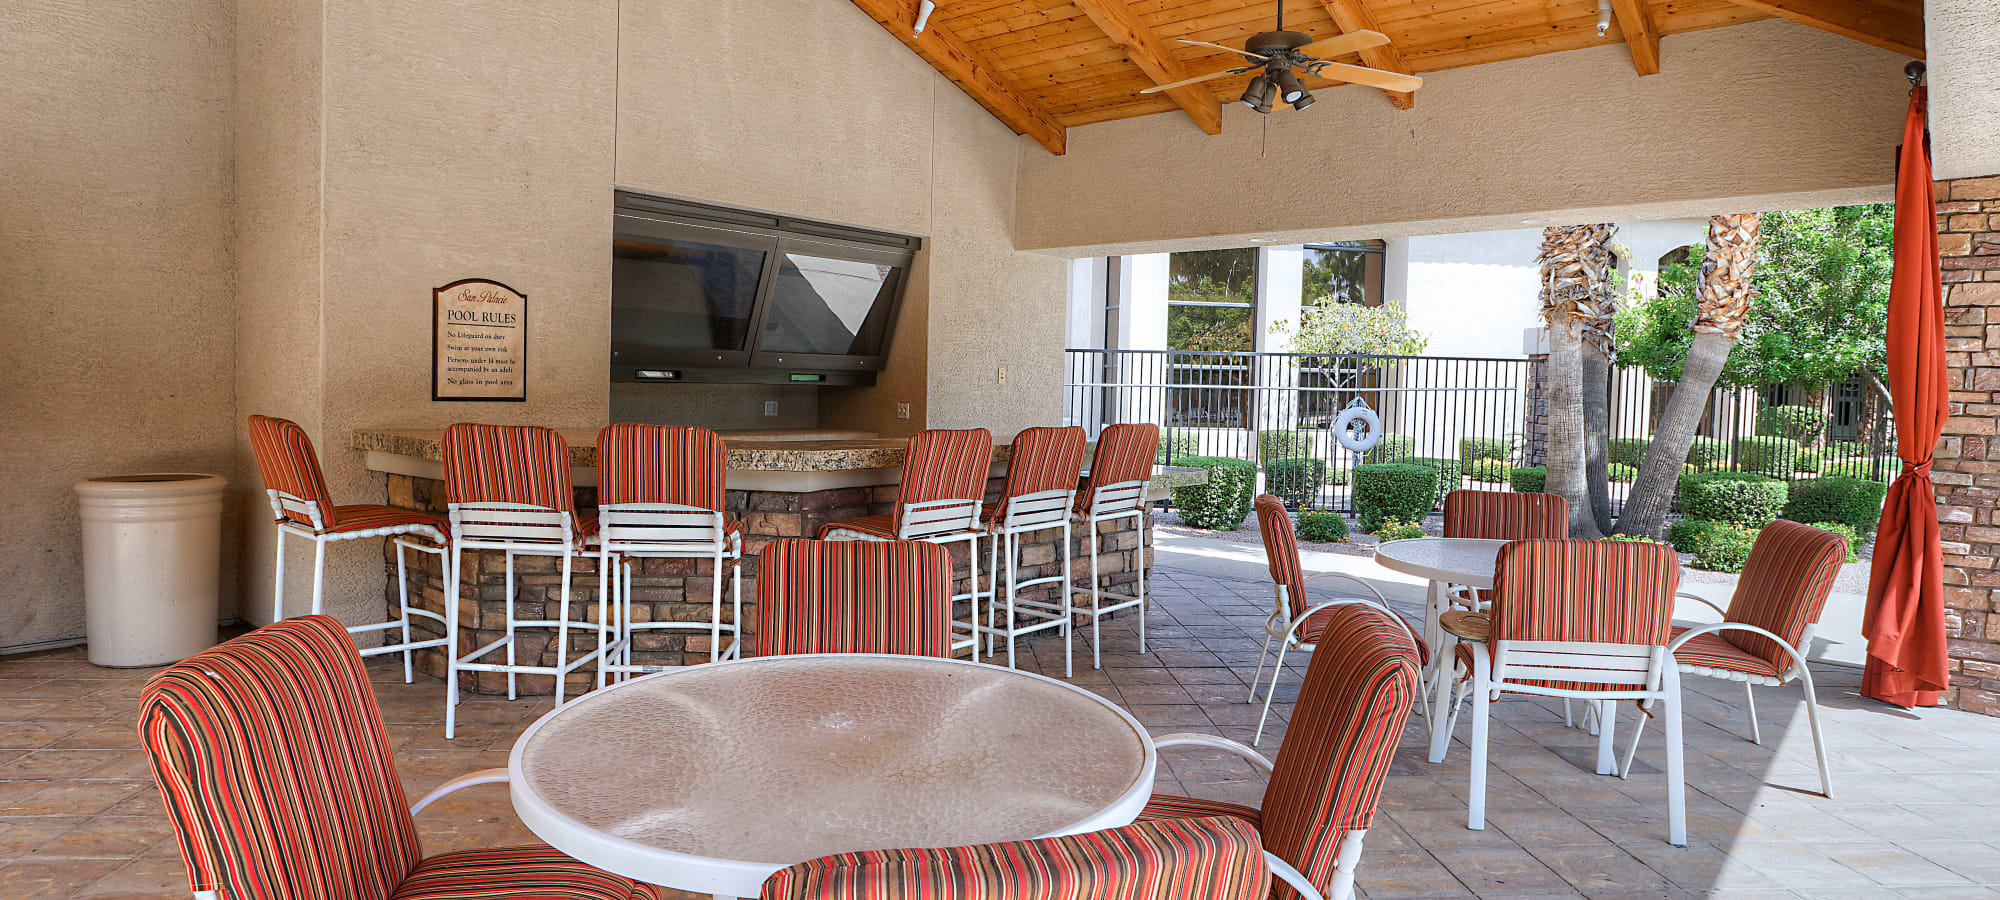 Comfortable seating and cabanas near the pool at San Palacio in Chandler, Arizona